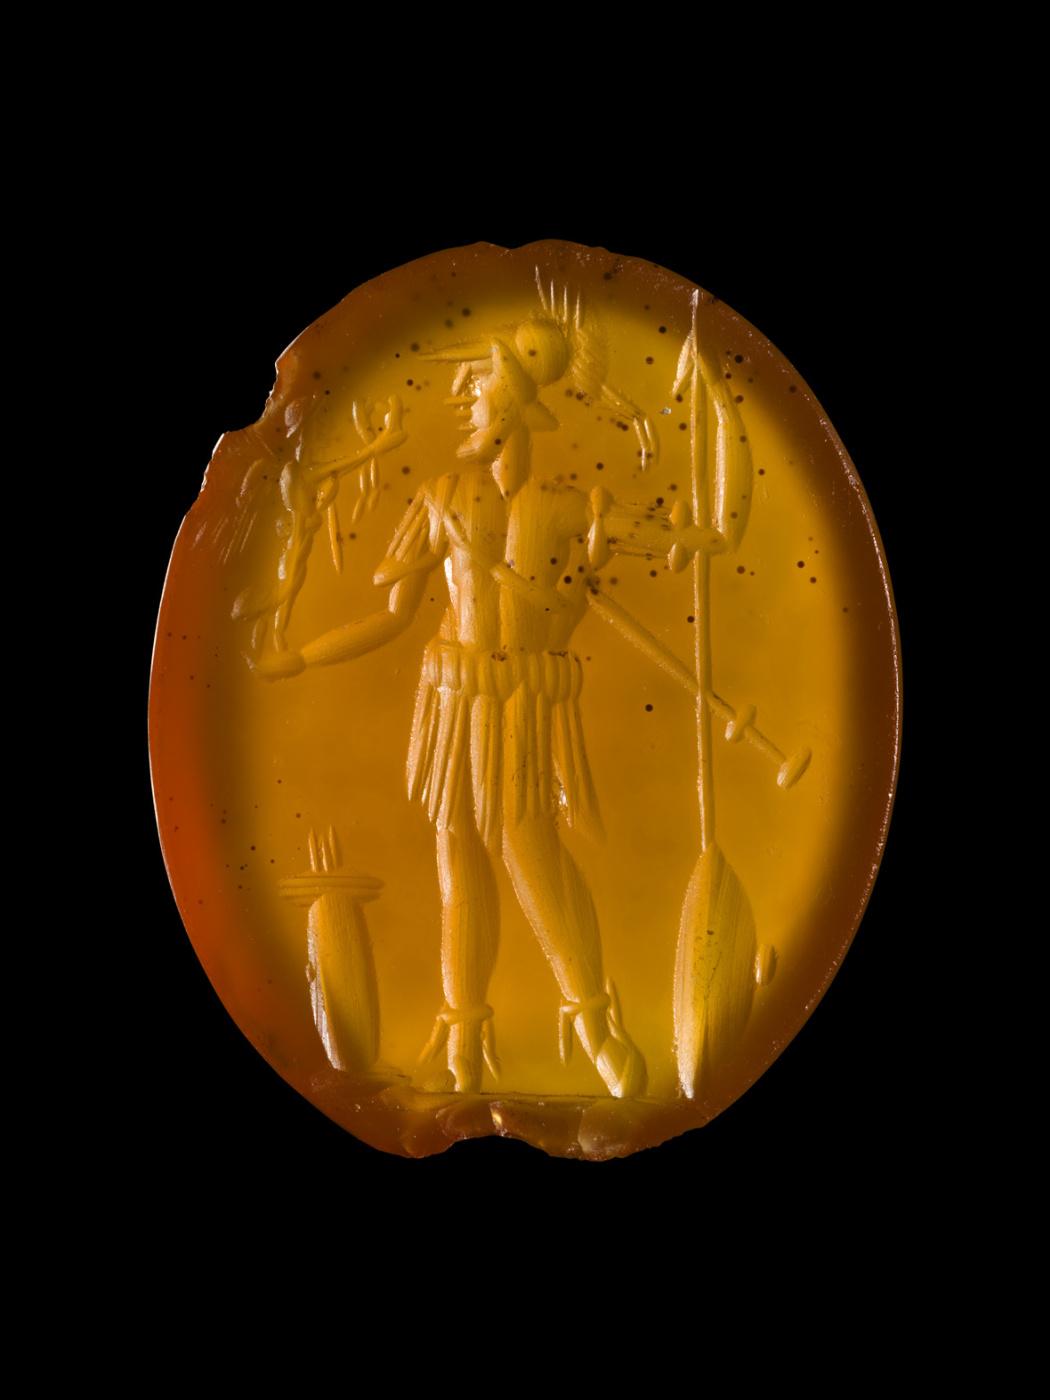 Unknown artist. Engraved gem. Mars, god of war, holds Victoria godess of victory, in his hand